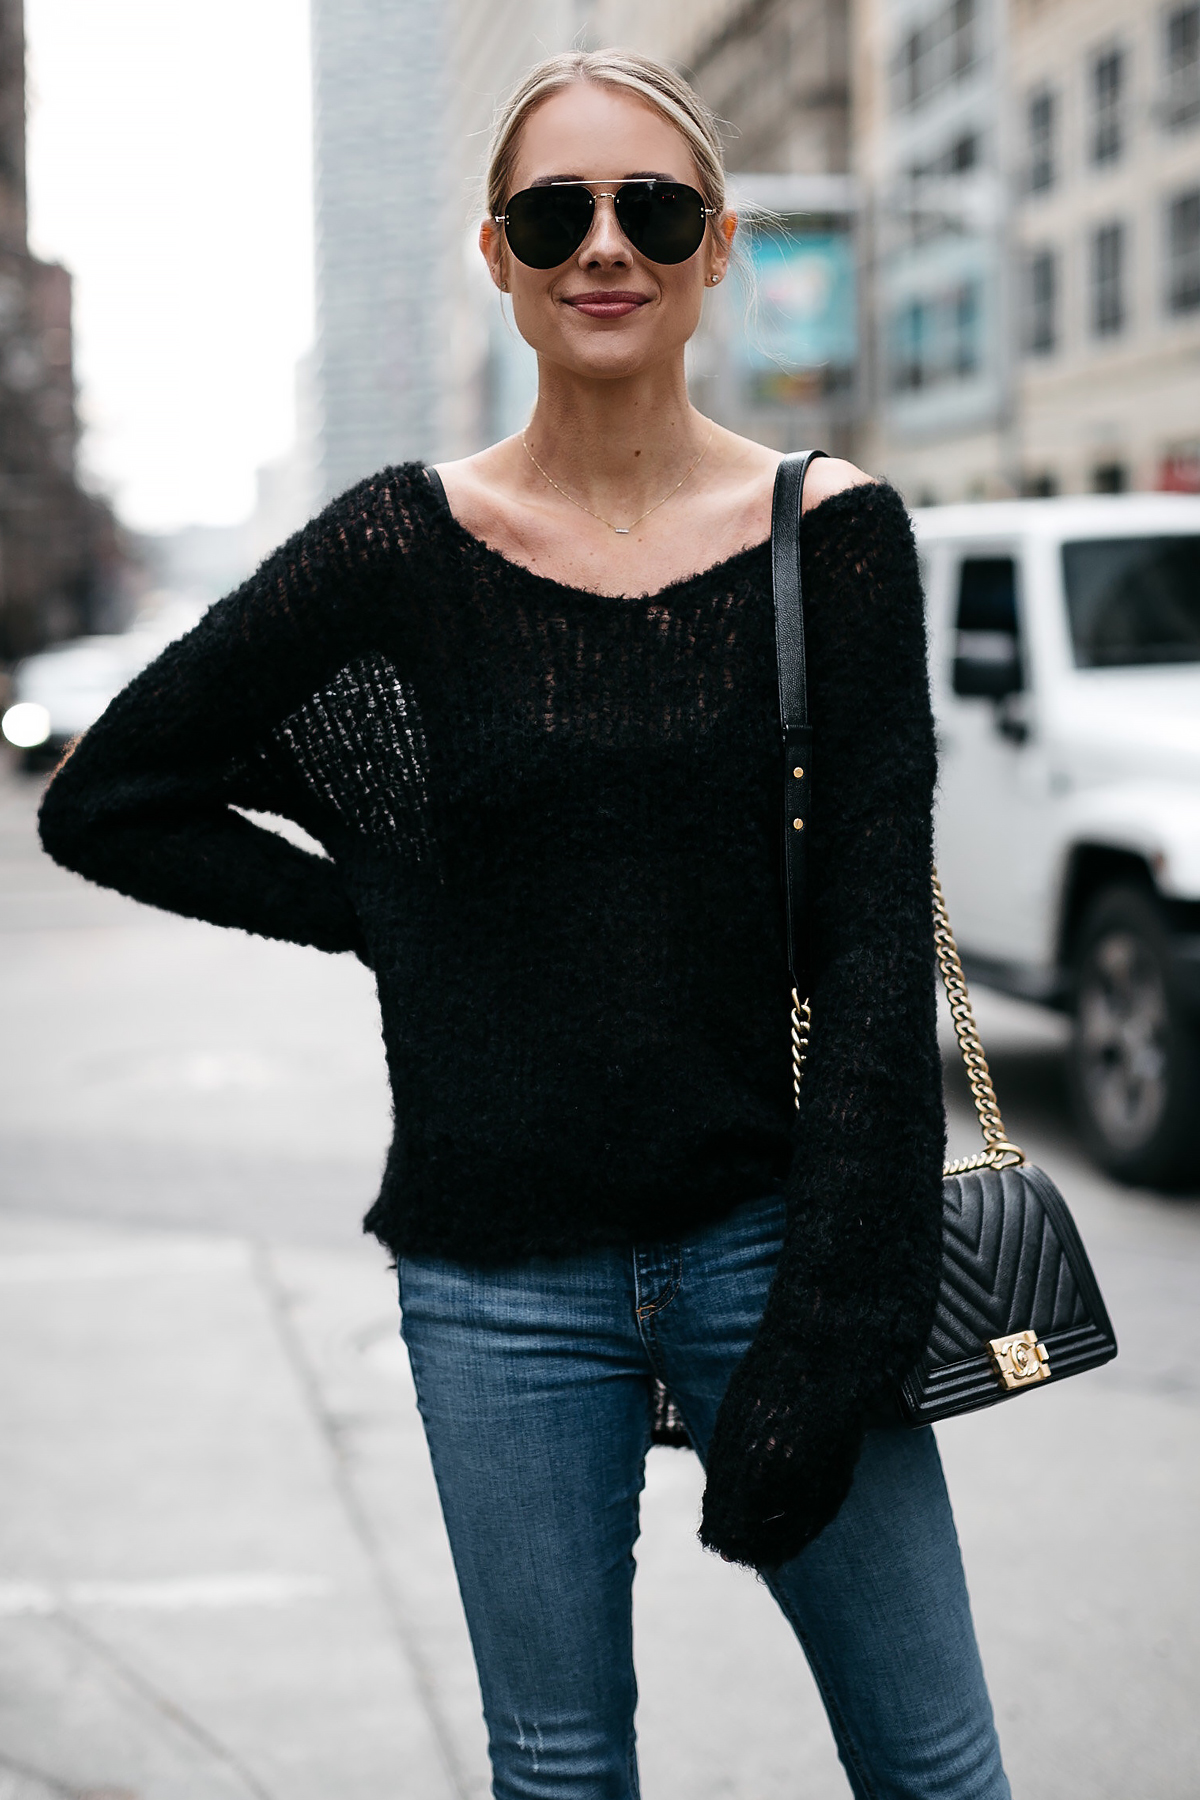 Blonde Woman Wearing rag and bone Black Sweater Denim Skinny Jeans Fashion Jackson Dallas Blogger Fashion Blogger Street Style